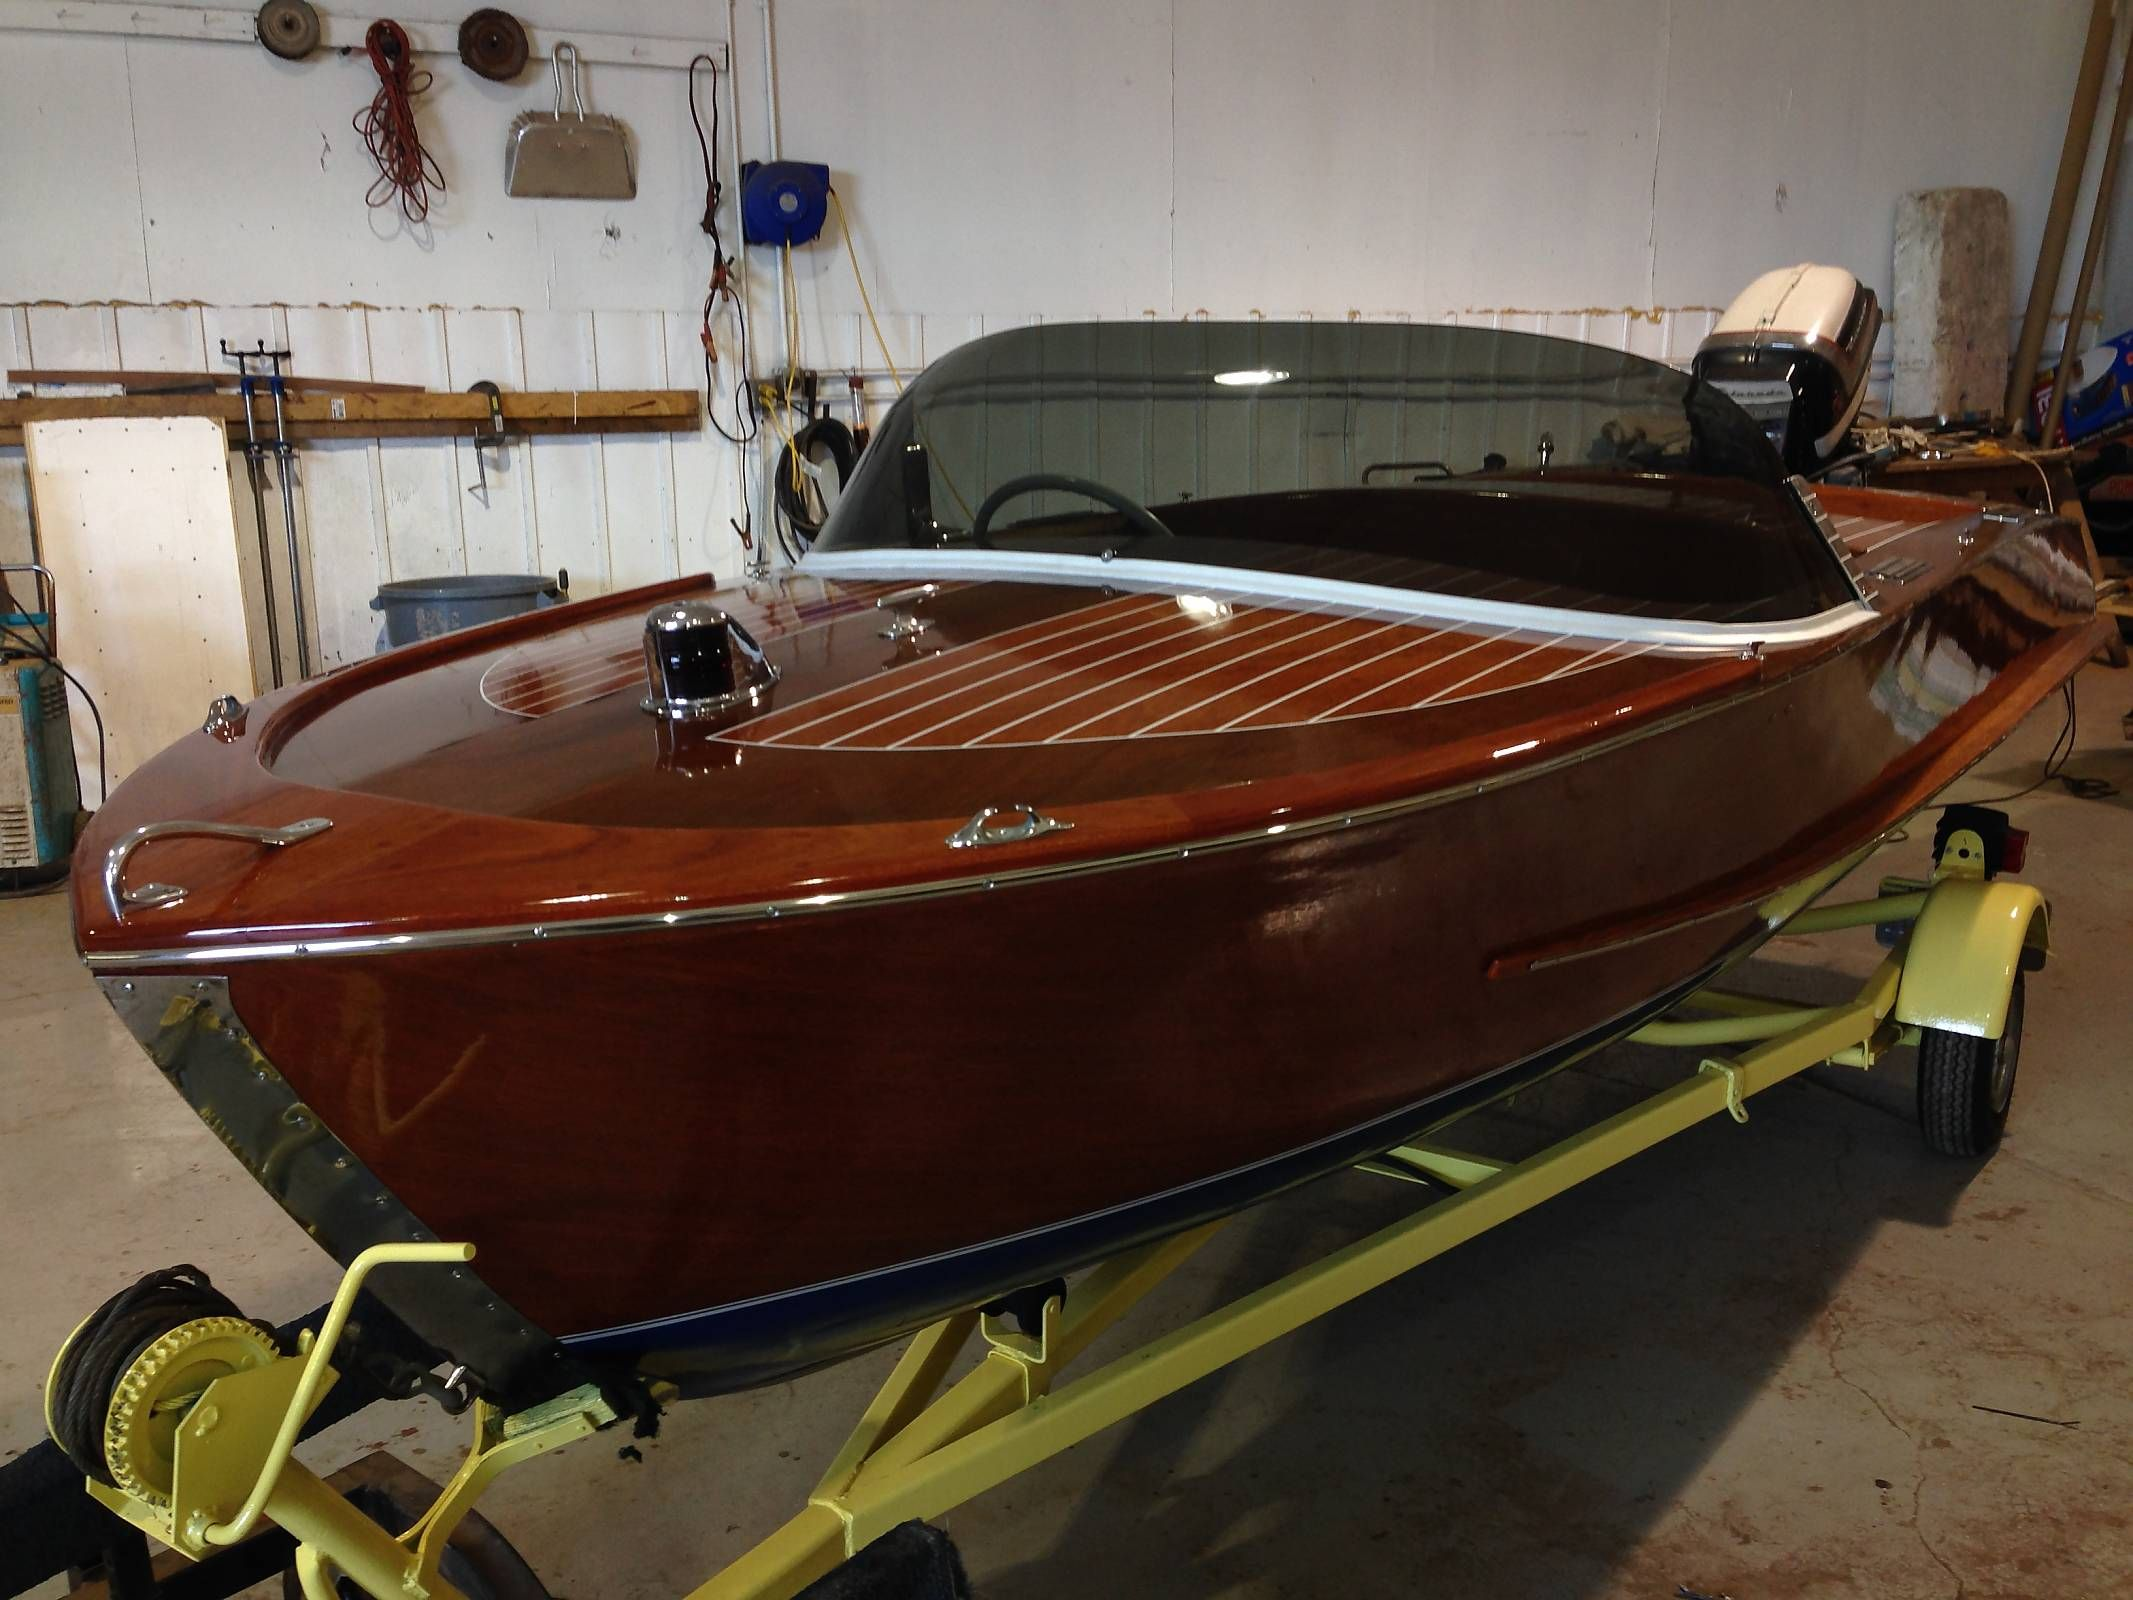 Home built jet dinghy s from new zealand boat design forums - 1957 Mahogany Delta With Fins Page 2 Boat Design Forums